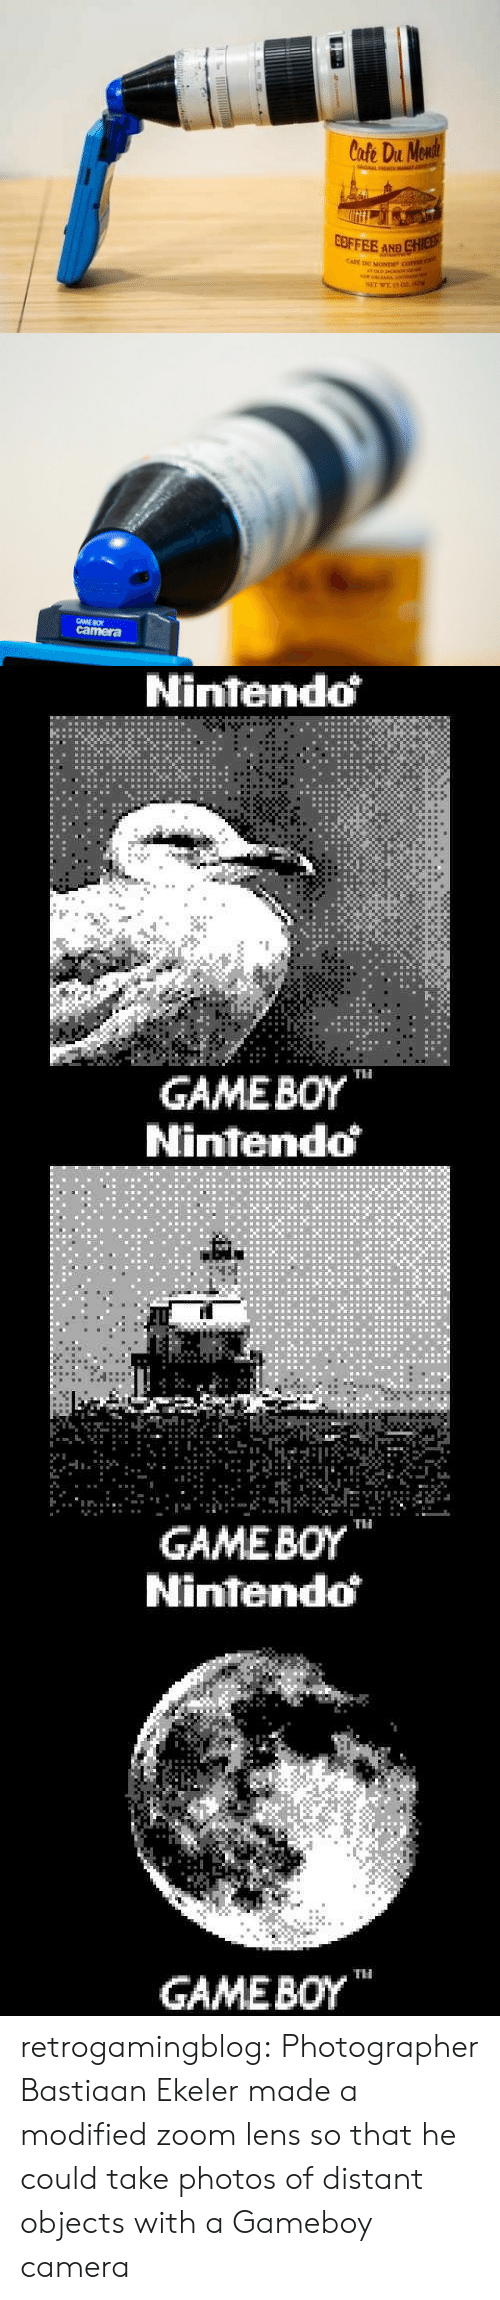 """distant: Cofe Du Monde  GAL FH  COFFEE AND CHIEB  CAFE DU MONDE"""" COFEE  ATOLD JHCEo  sew 0LAANS Ioin  NET WE 15 02z.i   GAME BO  camera   Nintendo  GAMEBOY  TH   Nintendo  GAMEBOY  Ti   Nintendo  GAME BOY retrogamingblog:   Photographer Bastiaan Ekeler made a modified zoom lens so that he could take photos of distant objects with a Gameboy camera"""